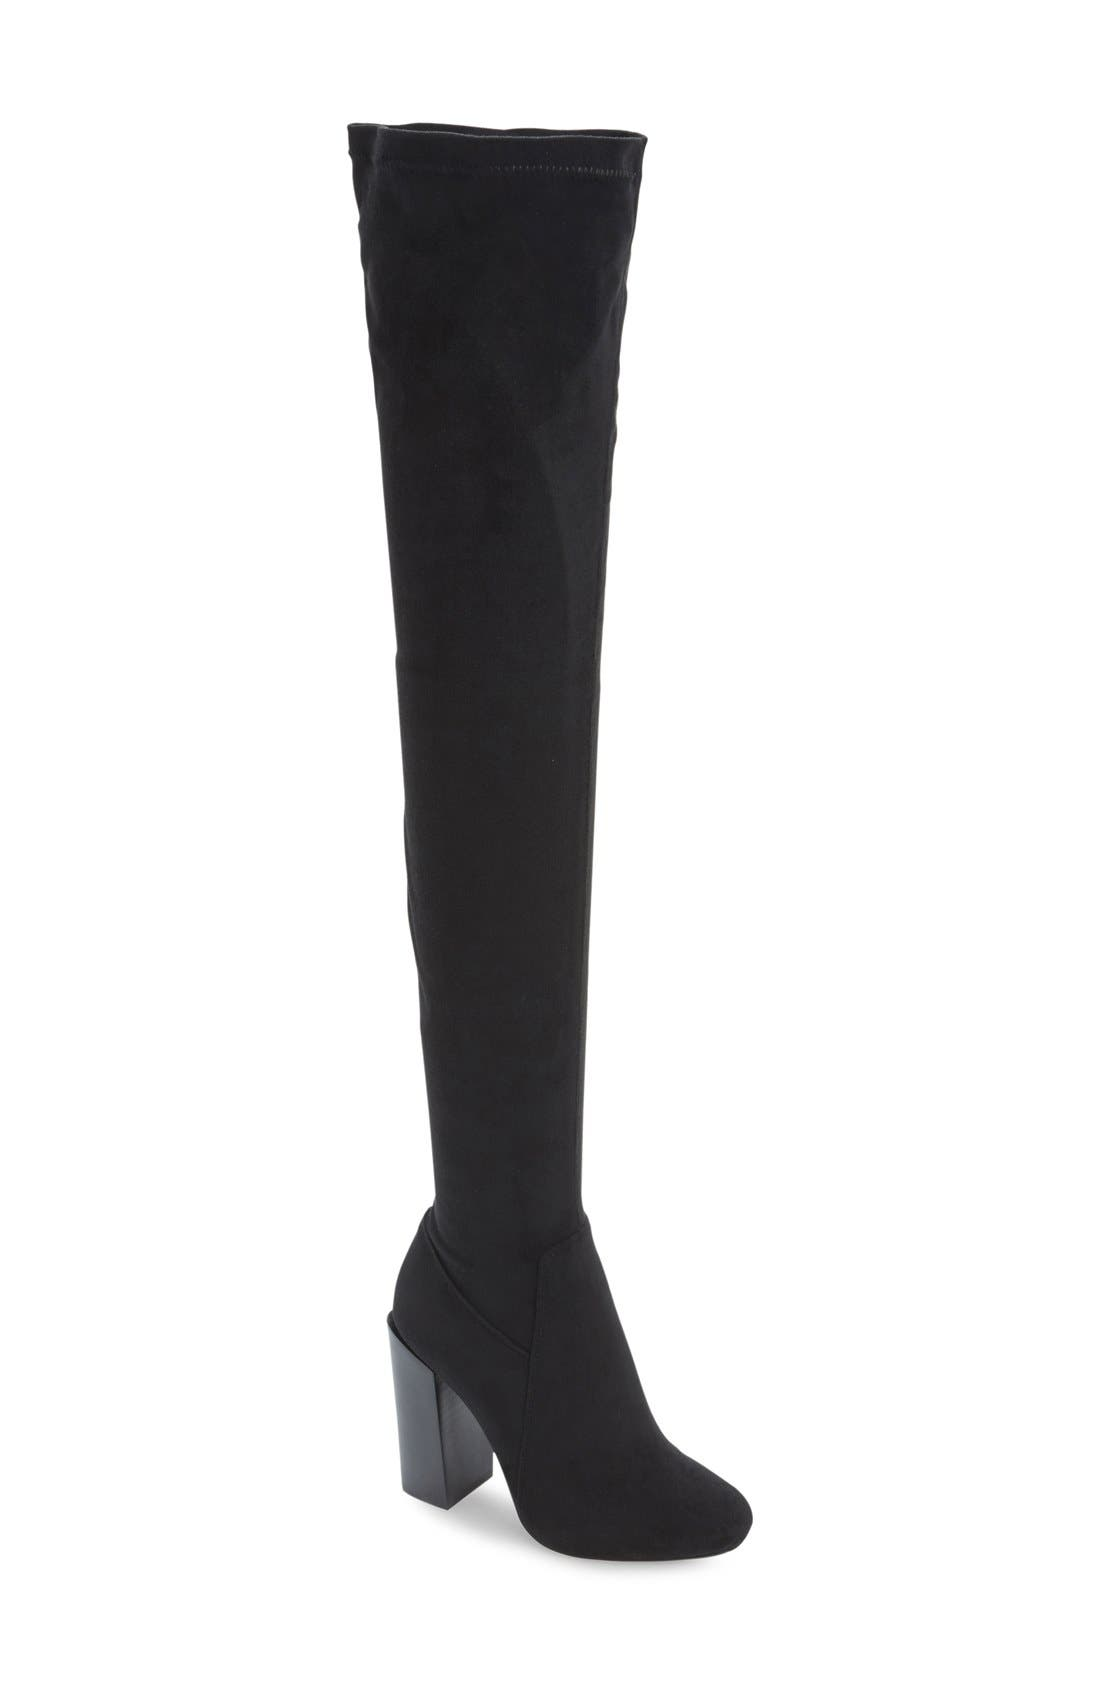 Main Image - Jeffrey Campbell 'Perouze' Over the Knee Boot (Women)